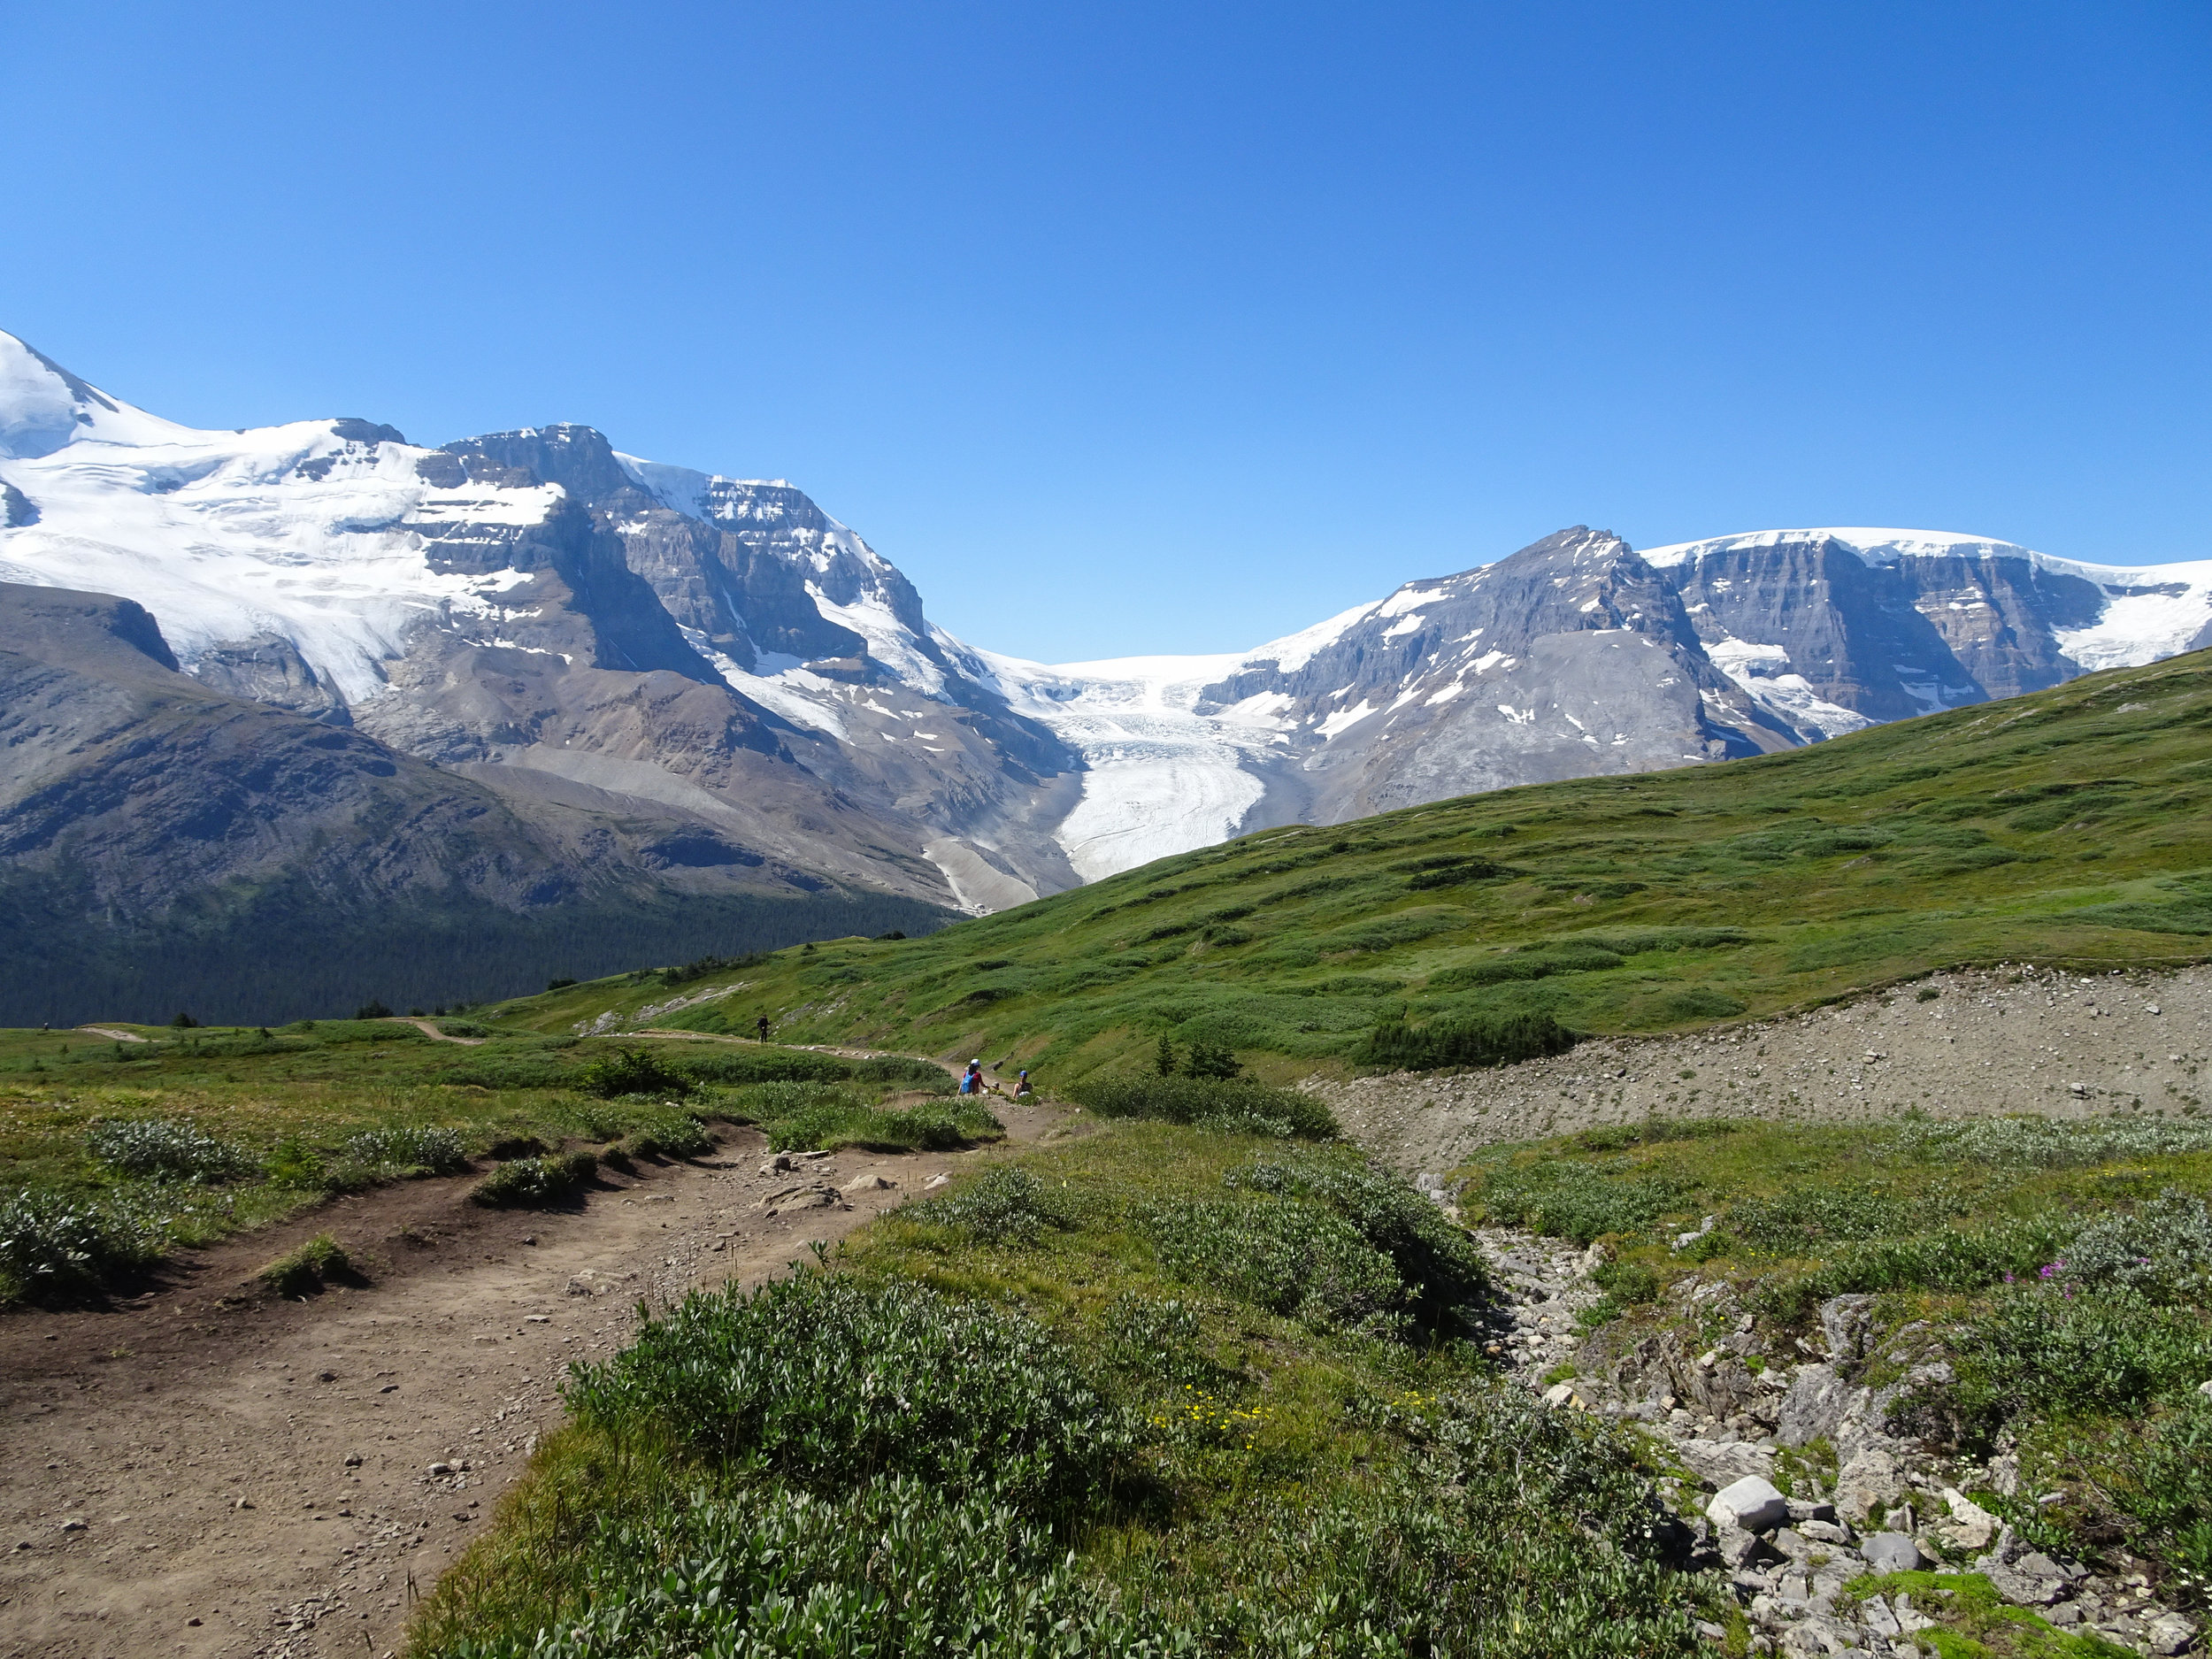 View of the Athabasca Glacier